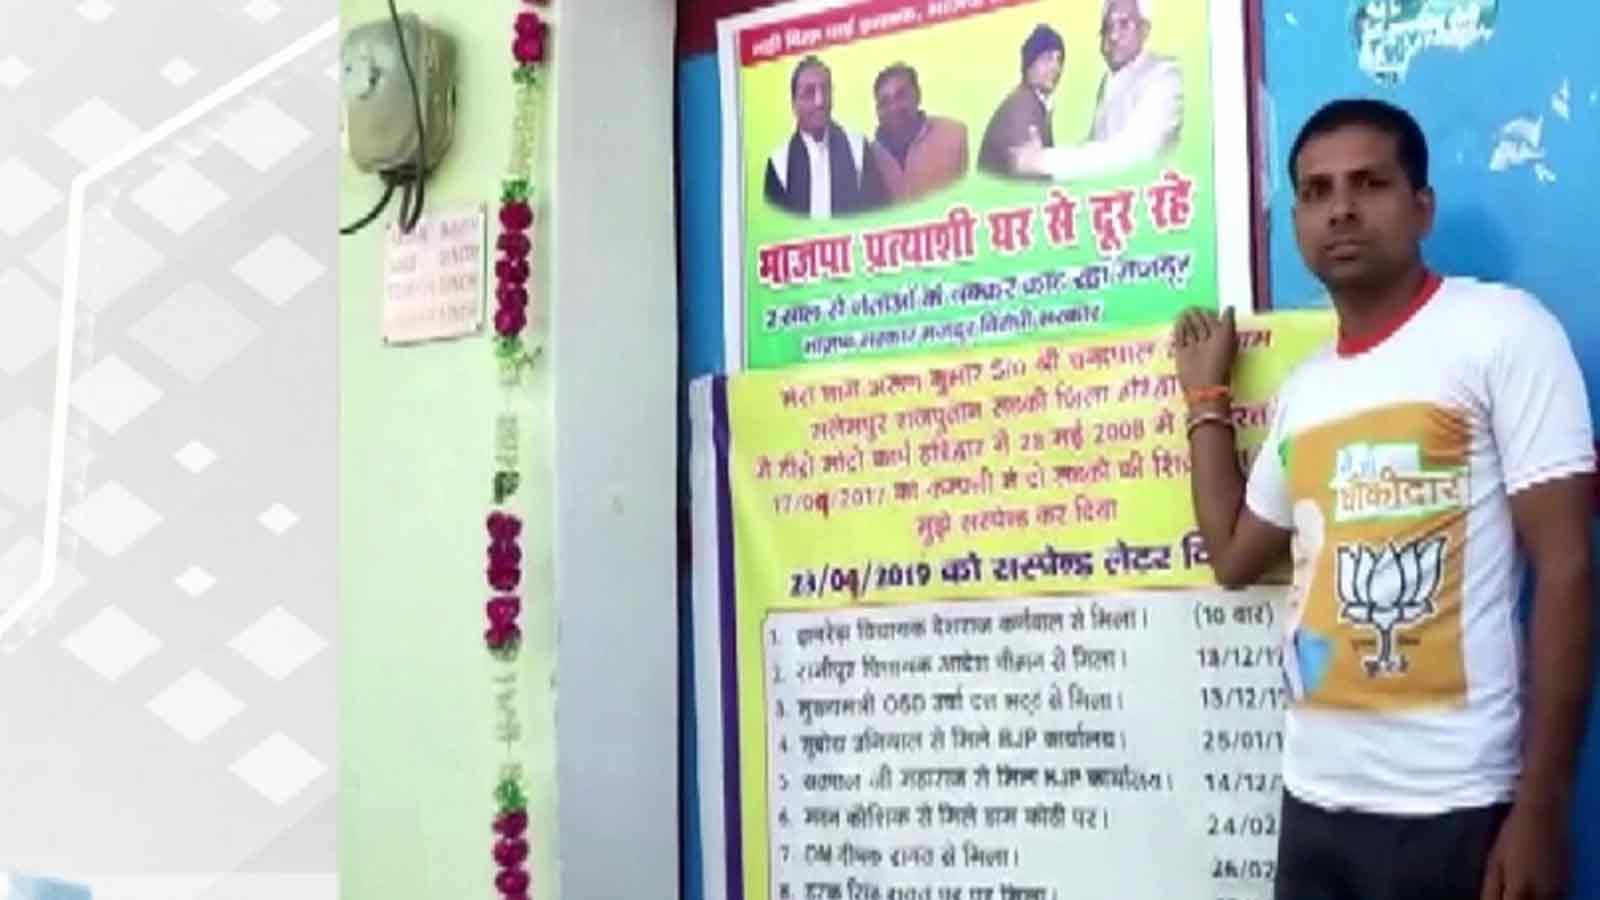 fed-up-with-unemployment-roorkee-man-put-up-bjp-leaders-stay-away-poster